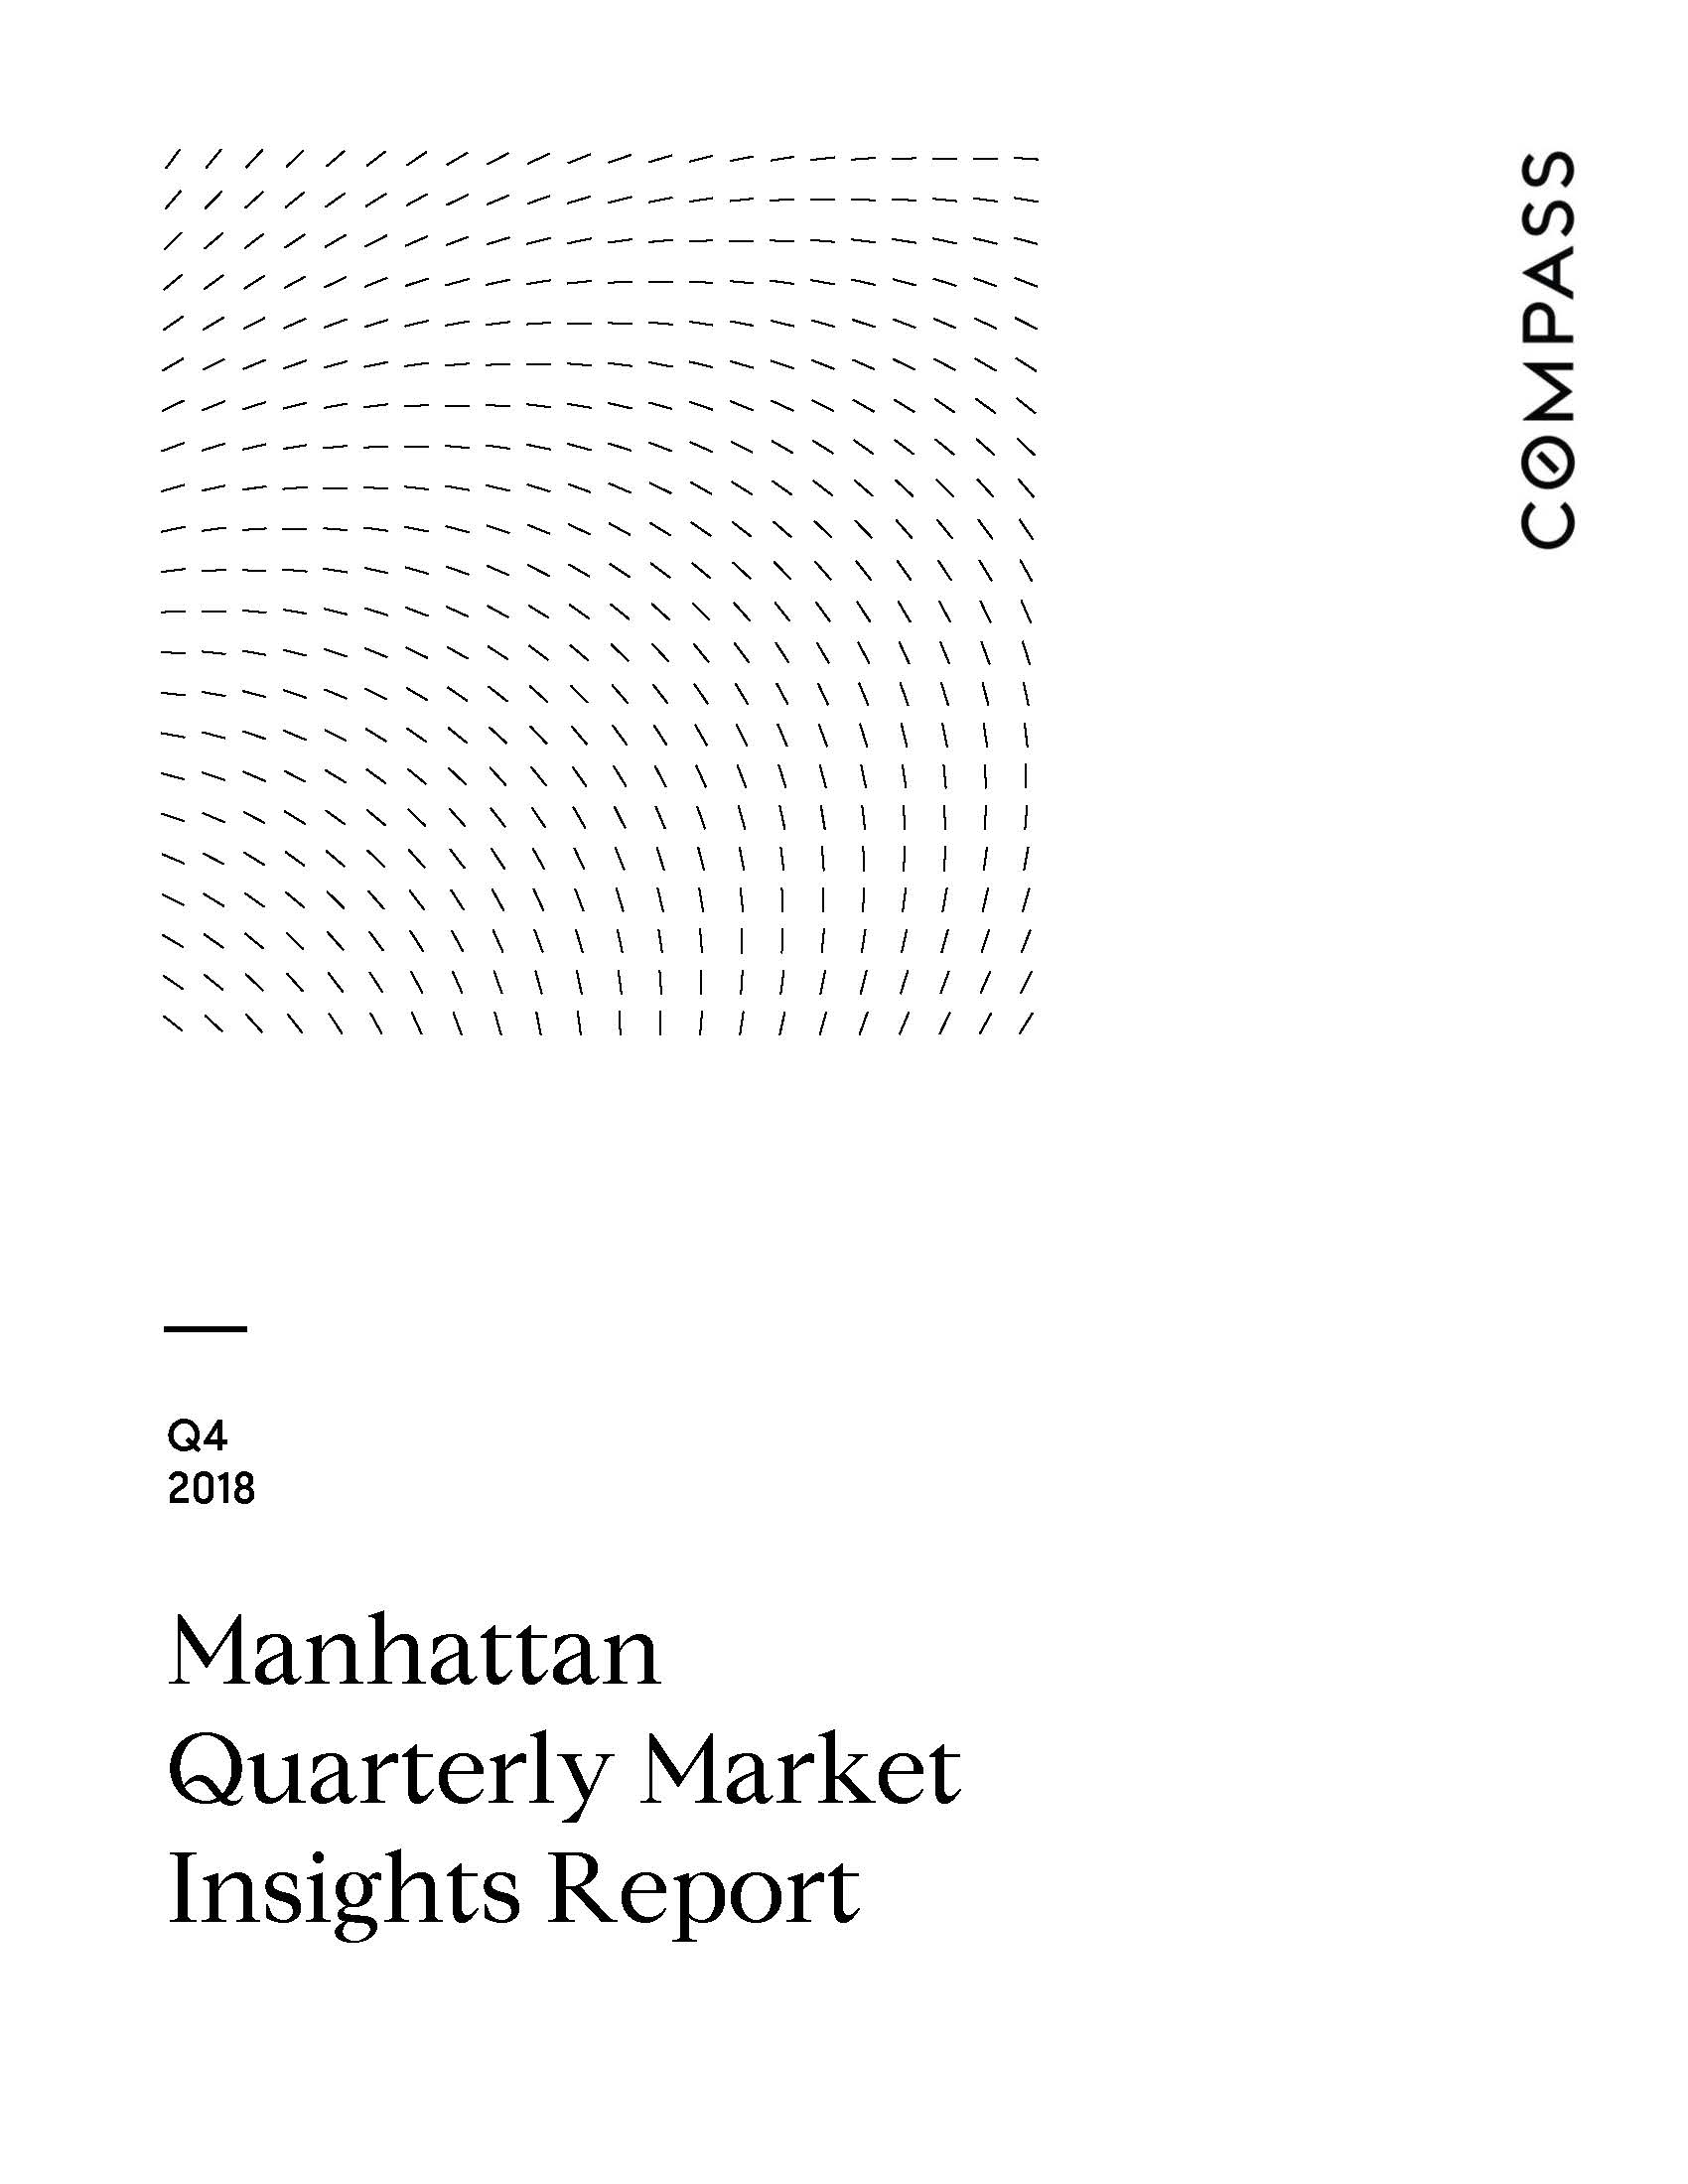 Manhattan Quarterly Market Insights Report - Q4 2018